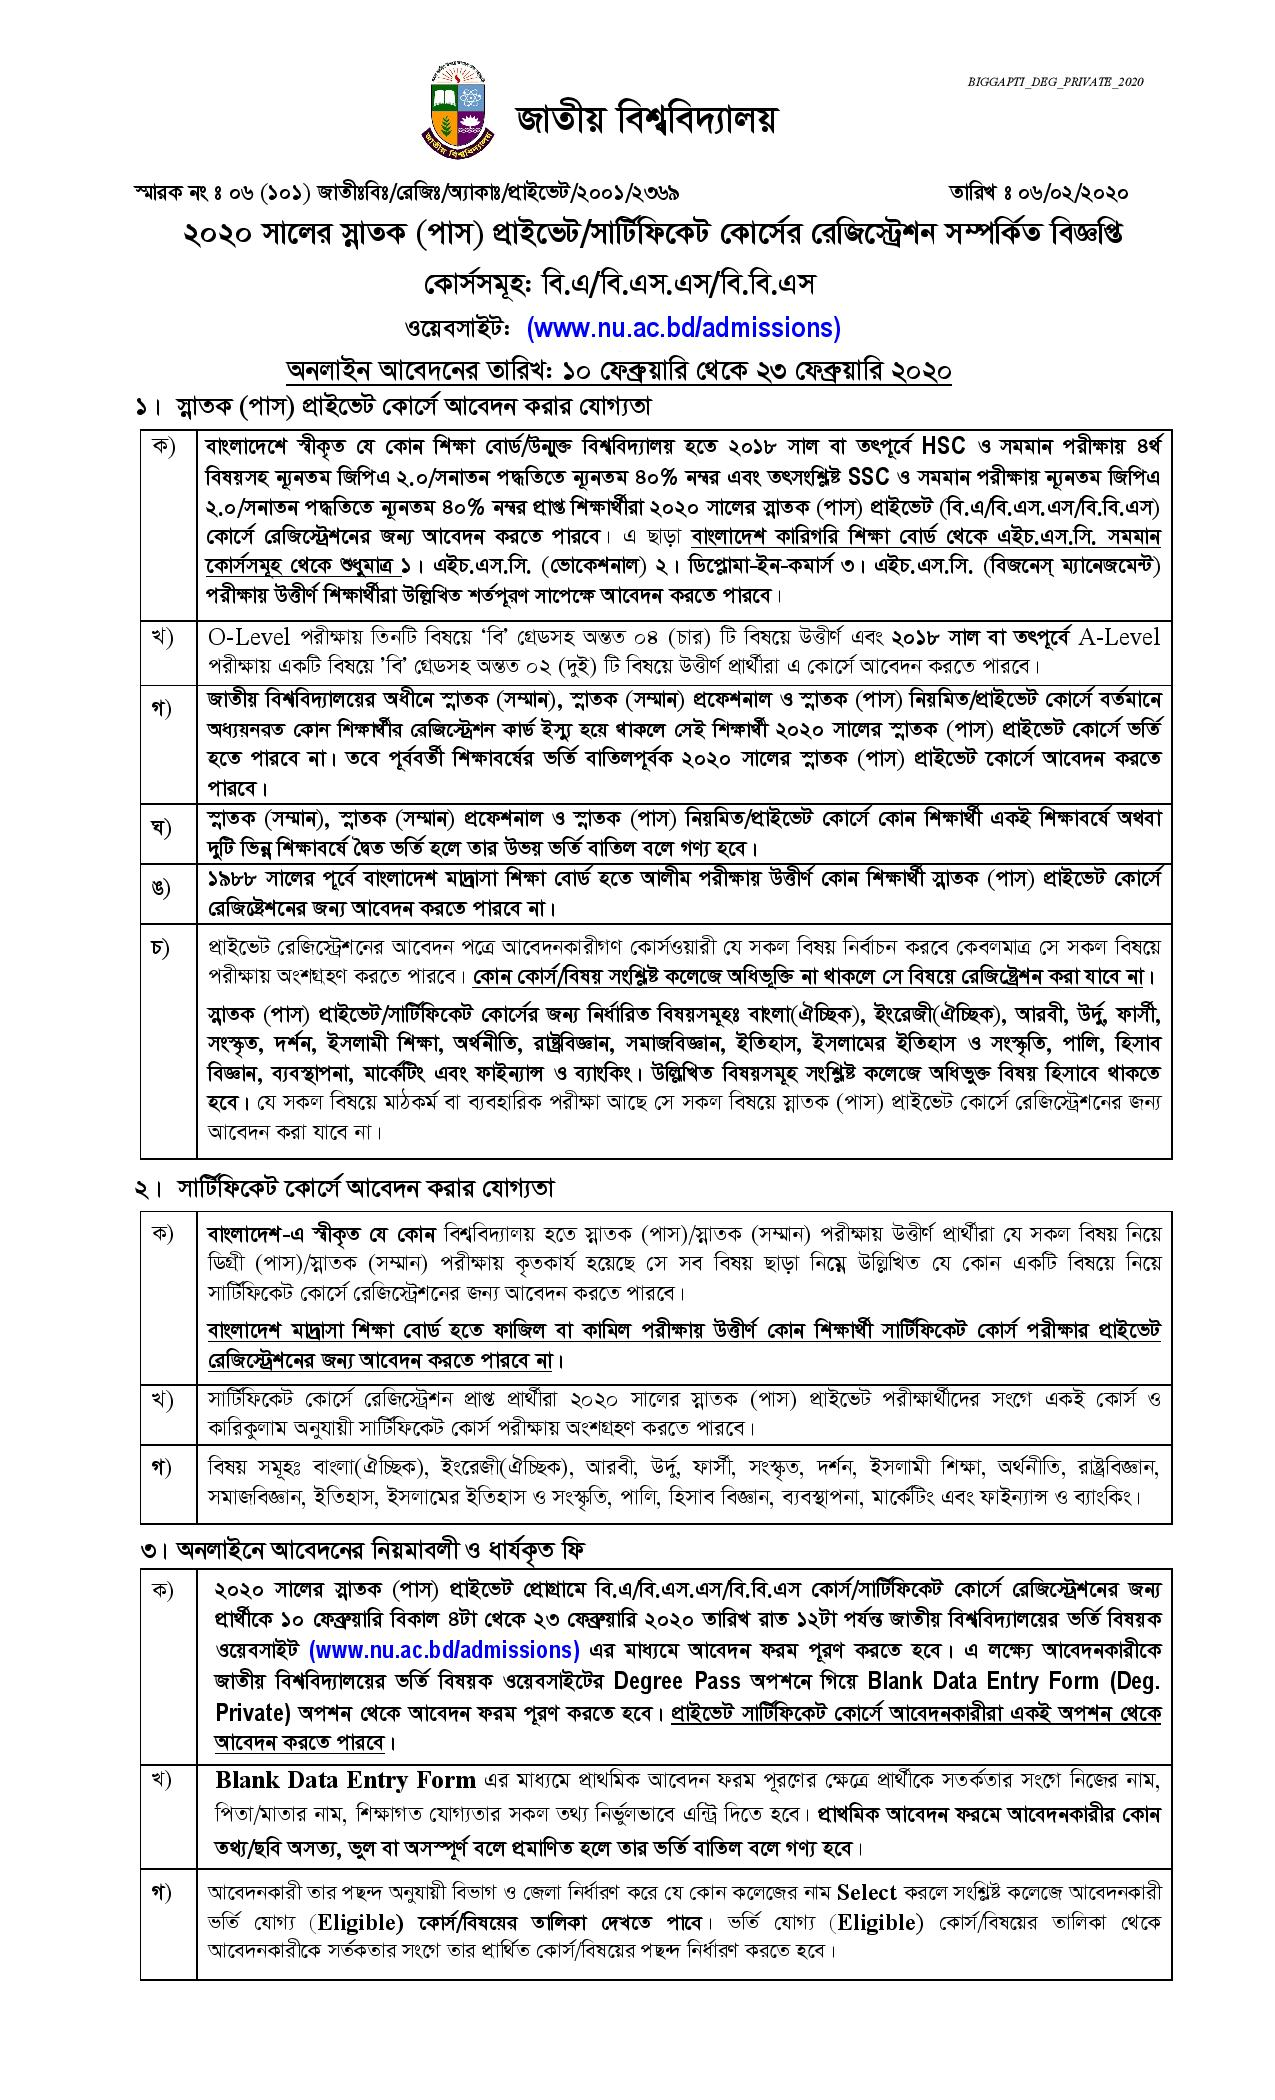 degree-private-admission-notice-page-001